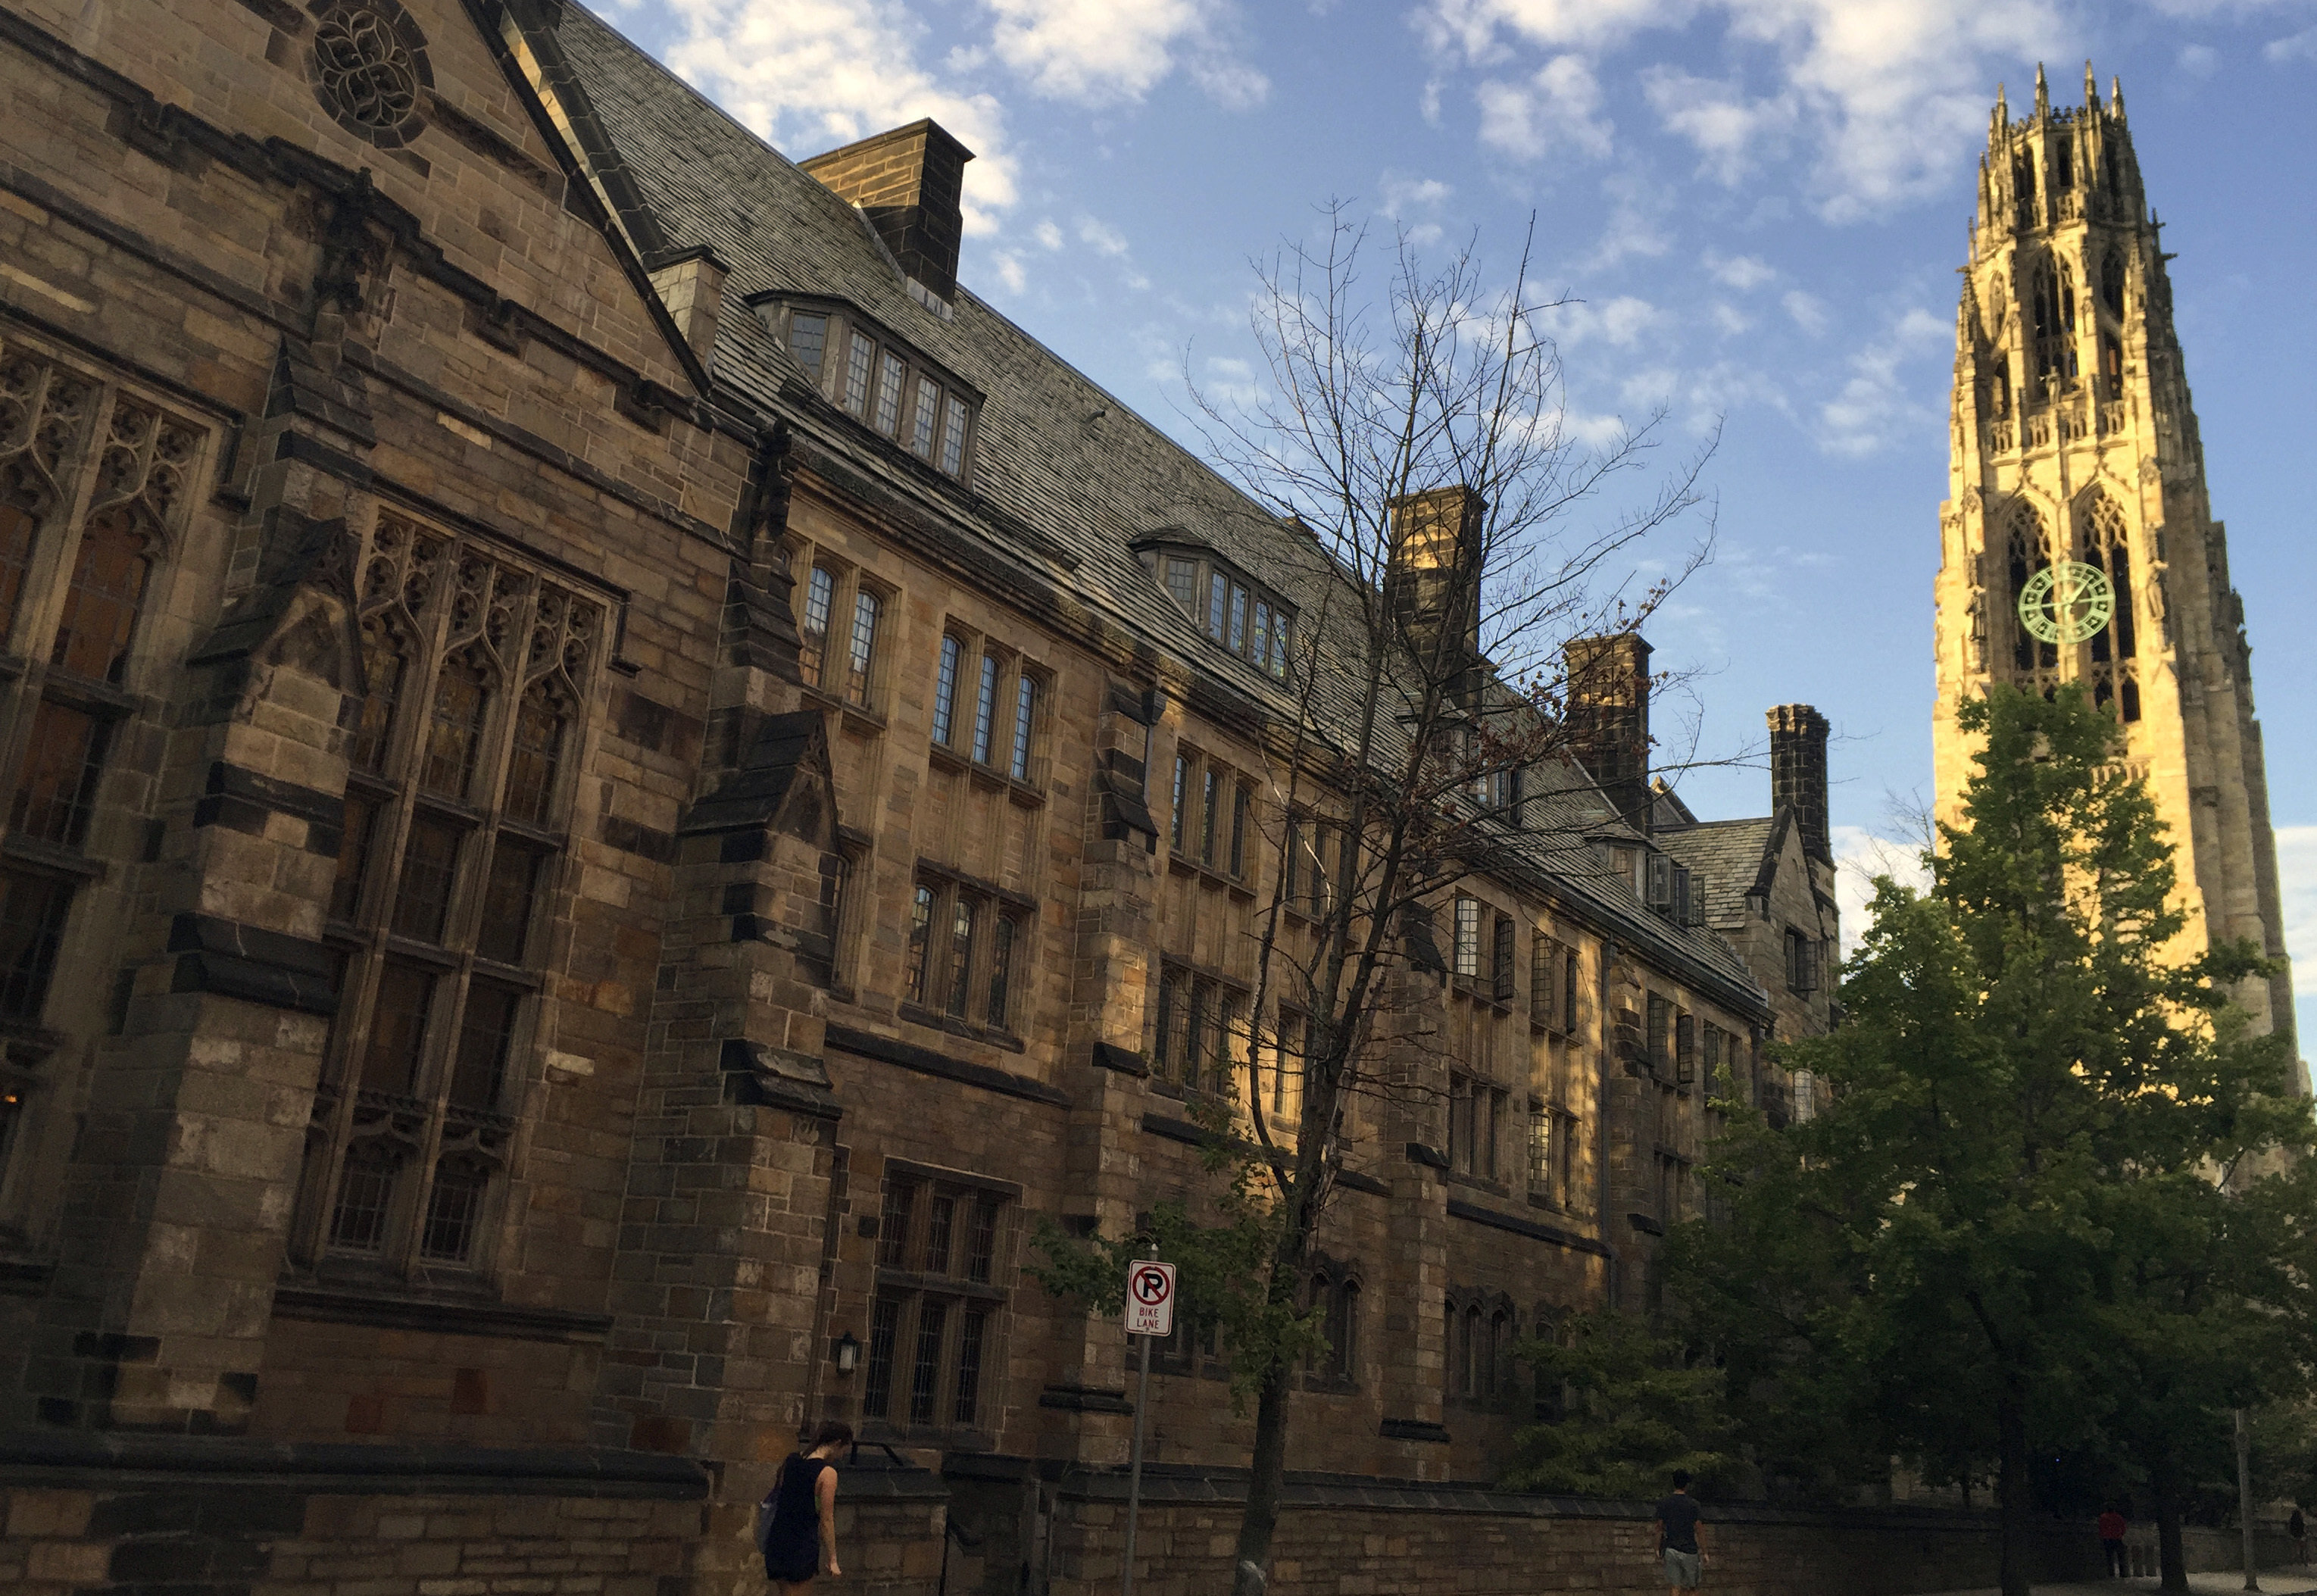 Federal probe finds Yale illegally discriminates against Asian, white applicants